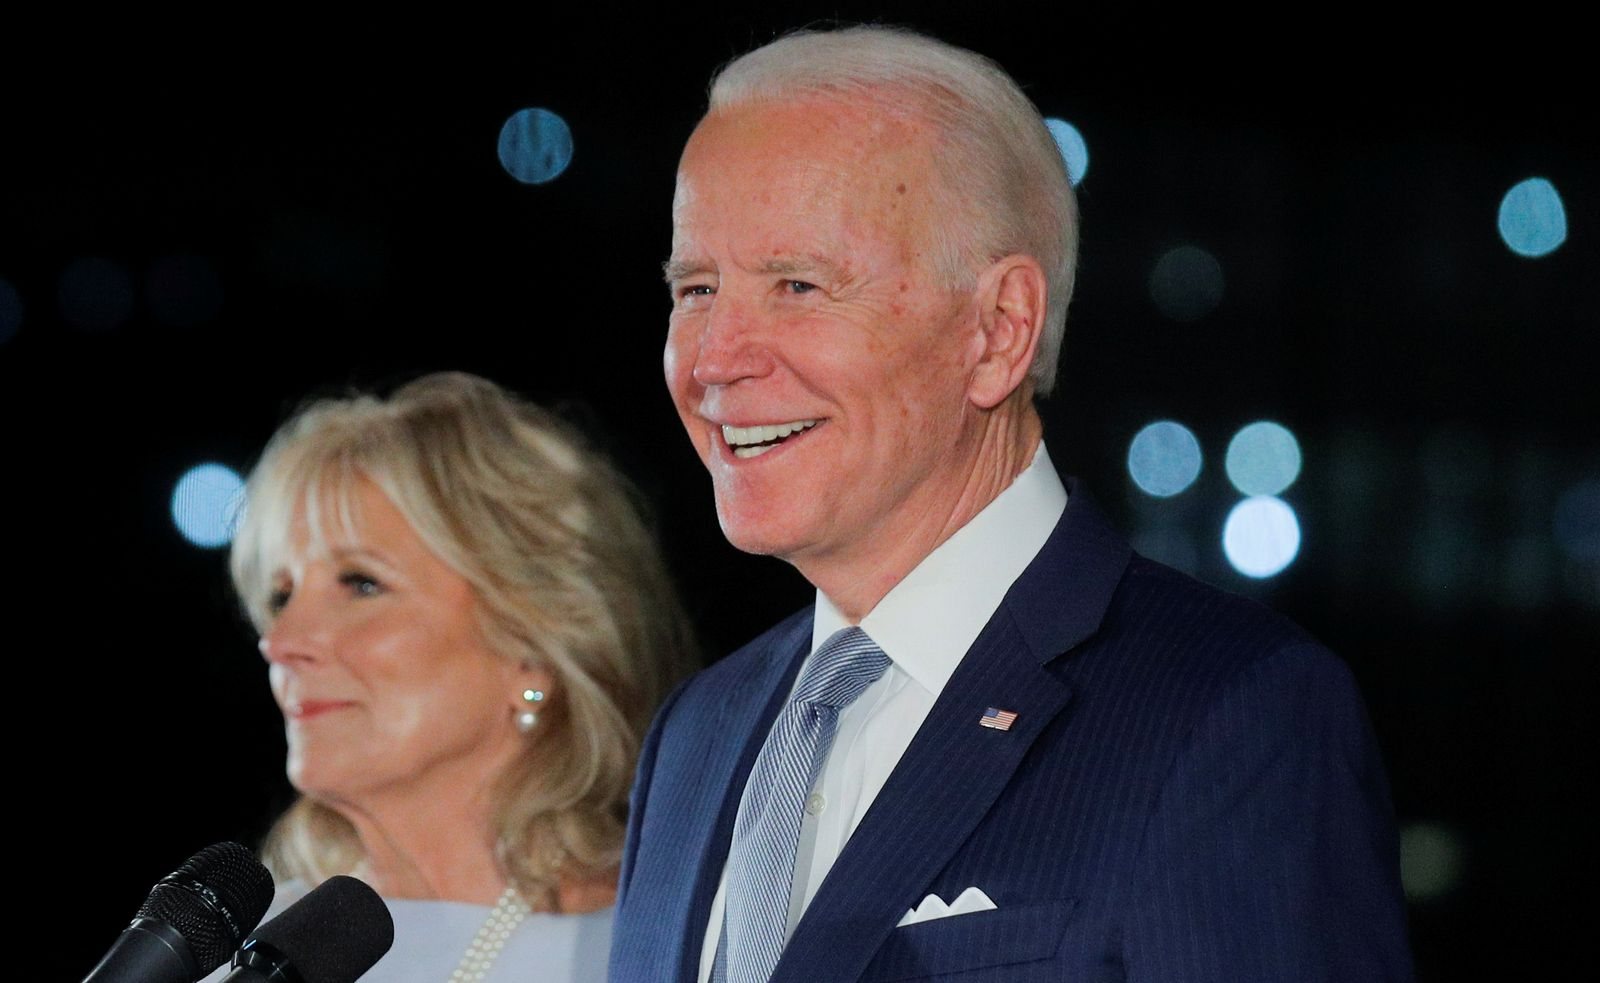 Democratic U.S. presidential candidate and former Vice President Joe Biden smiles as he speaks during a primary night news conference in Philadelphia